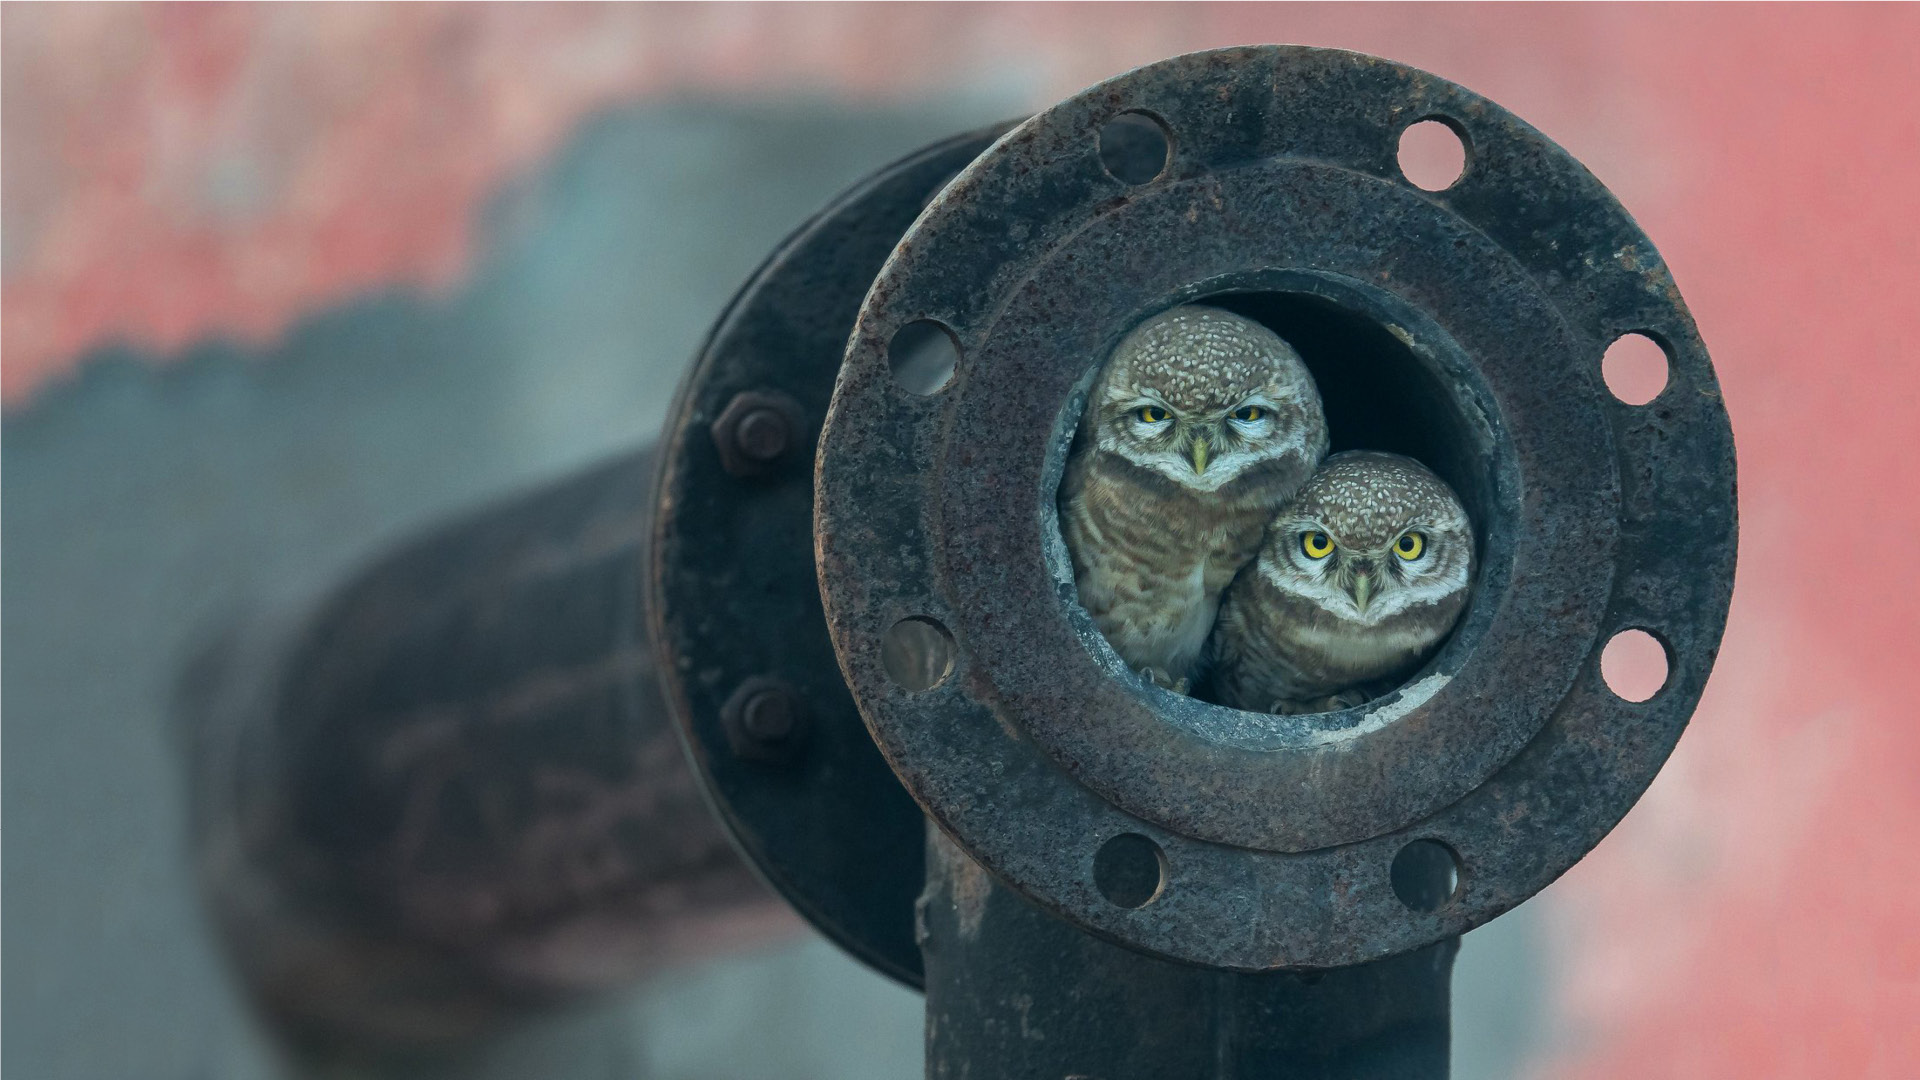 General 1920x1080 nature birds owl photography rust screws  circle pipe depth of field